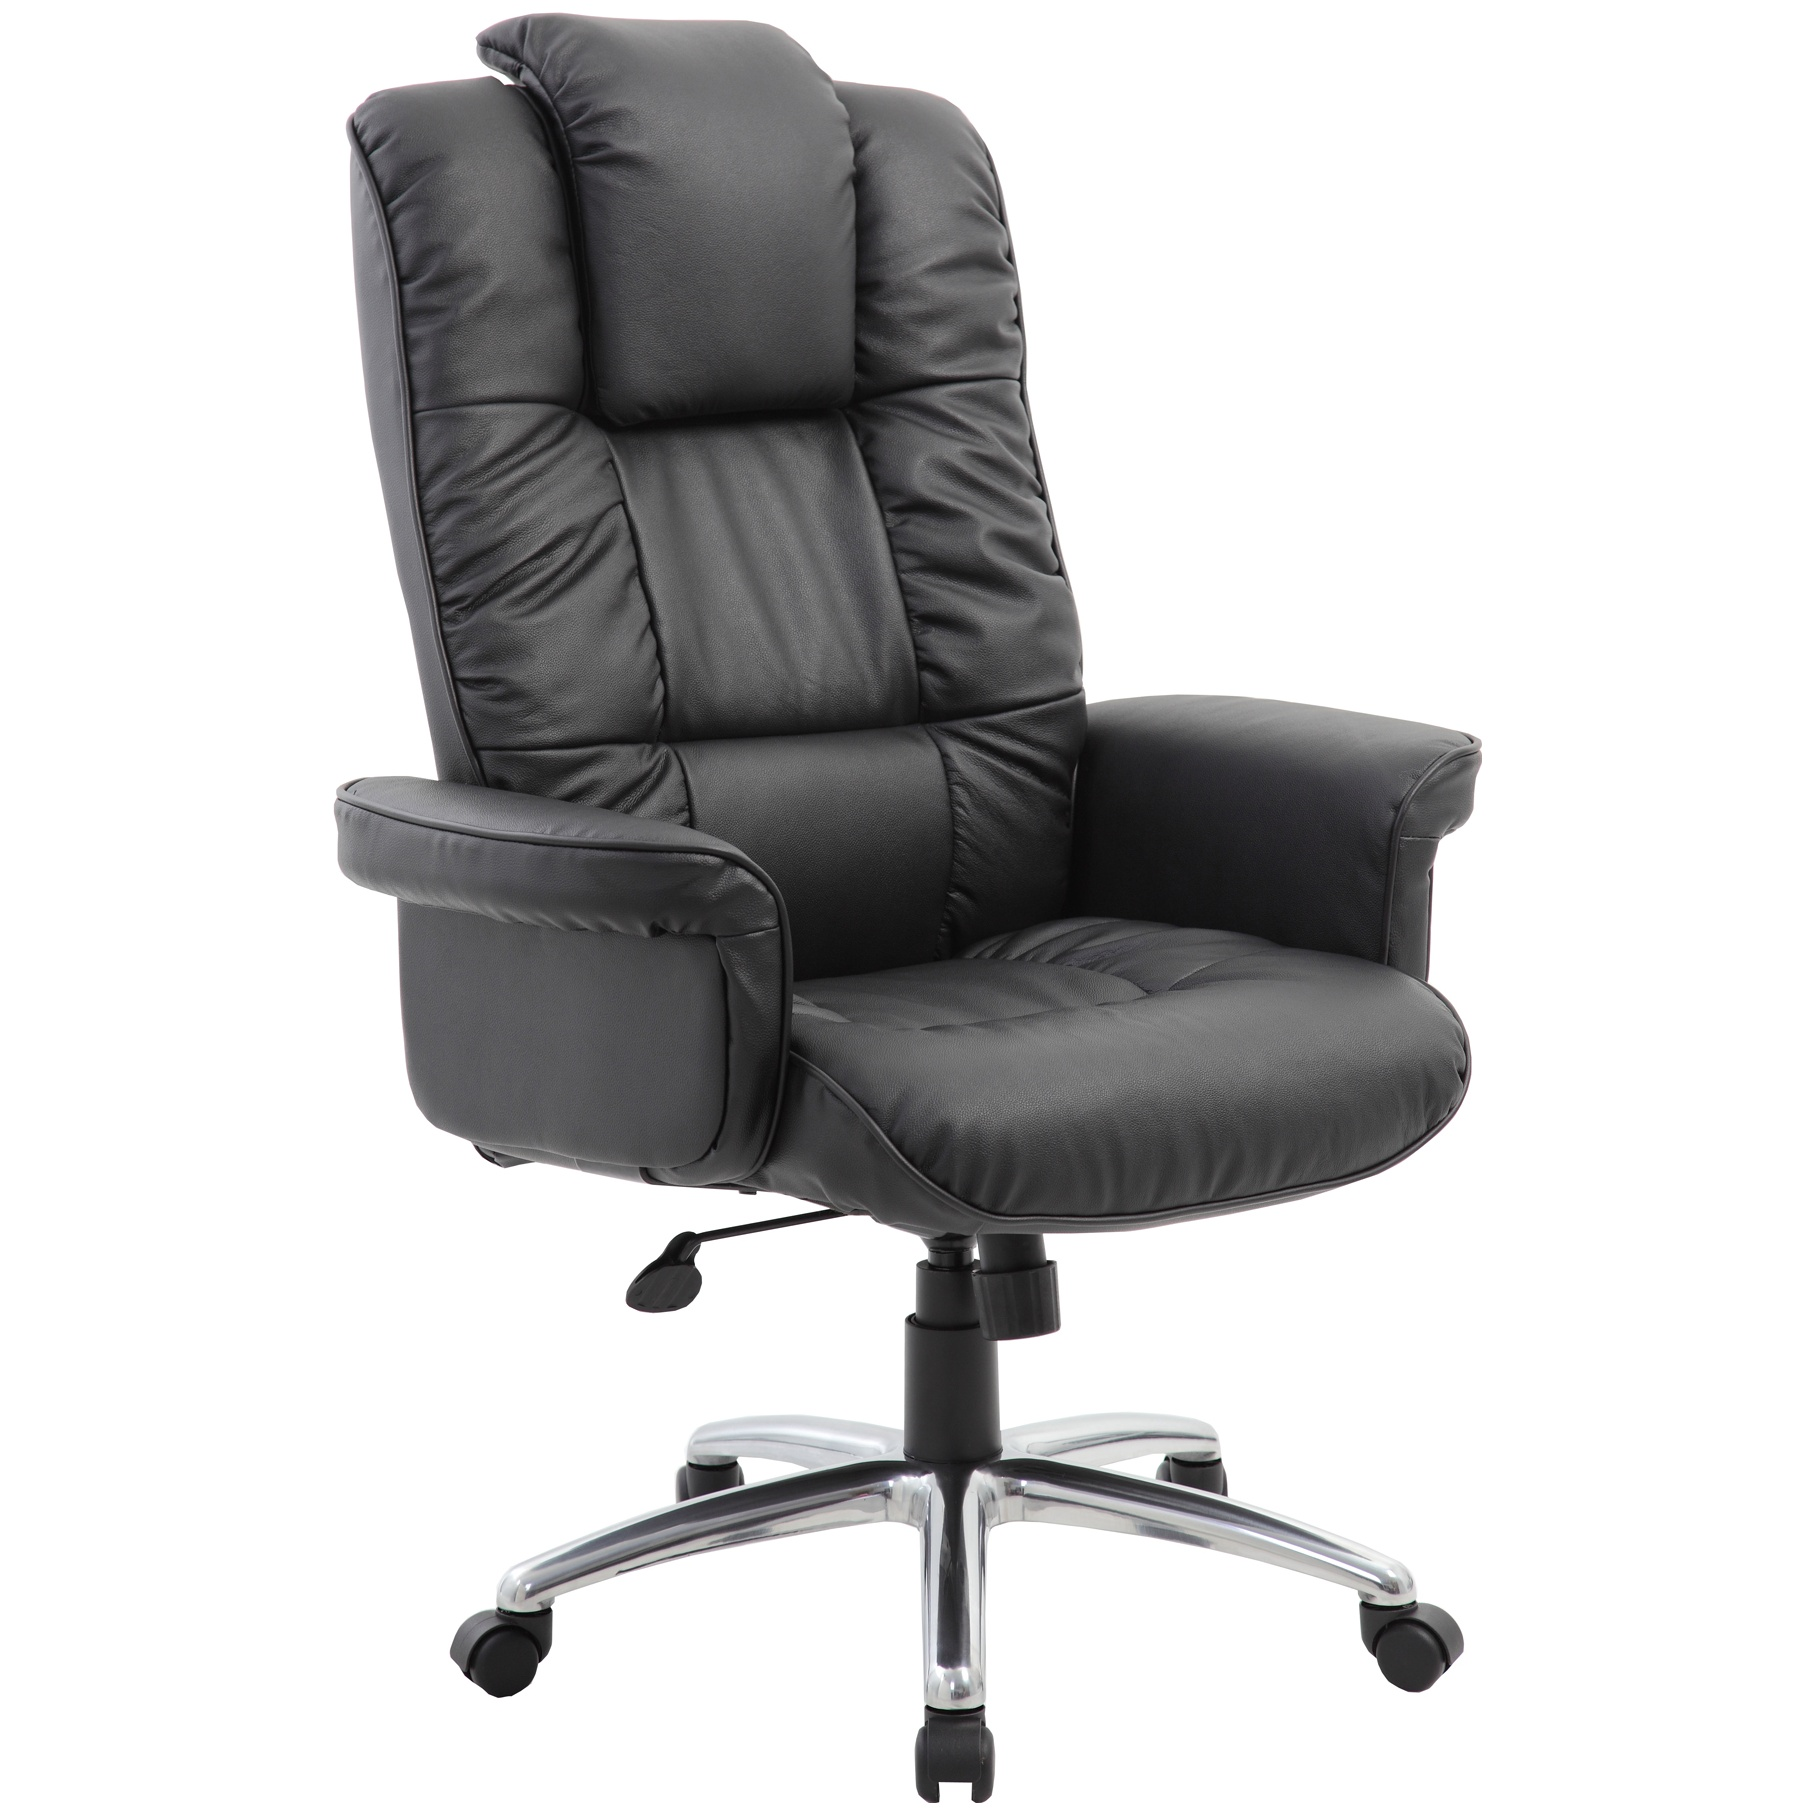 Athens Executive Leather Faced Office Armchair | Executive ...